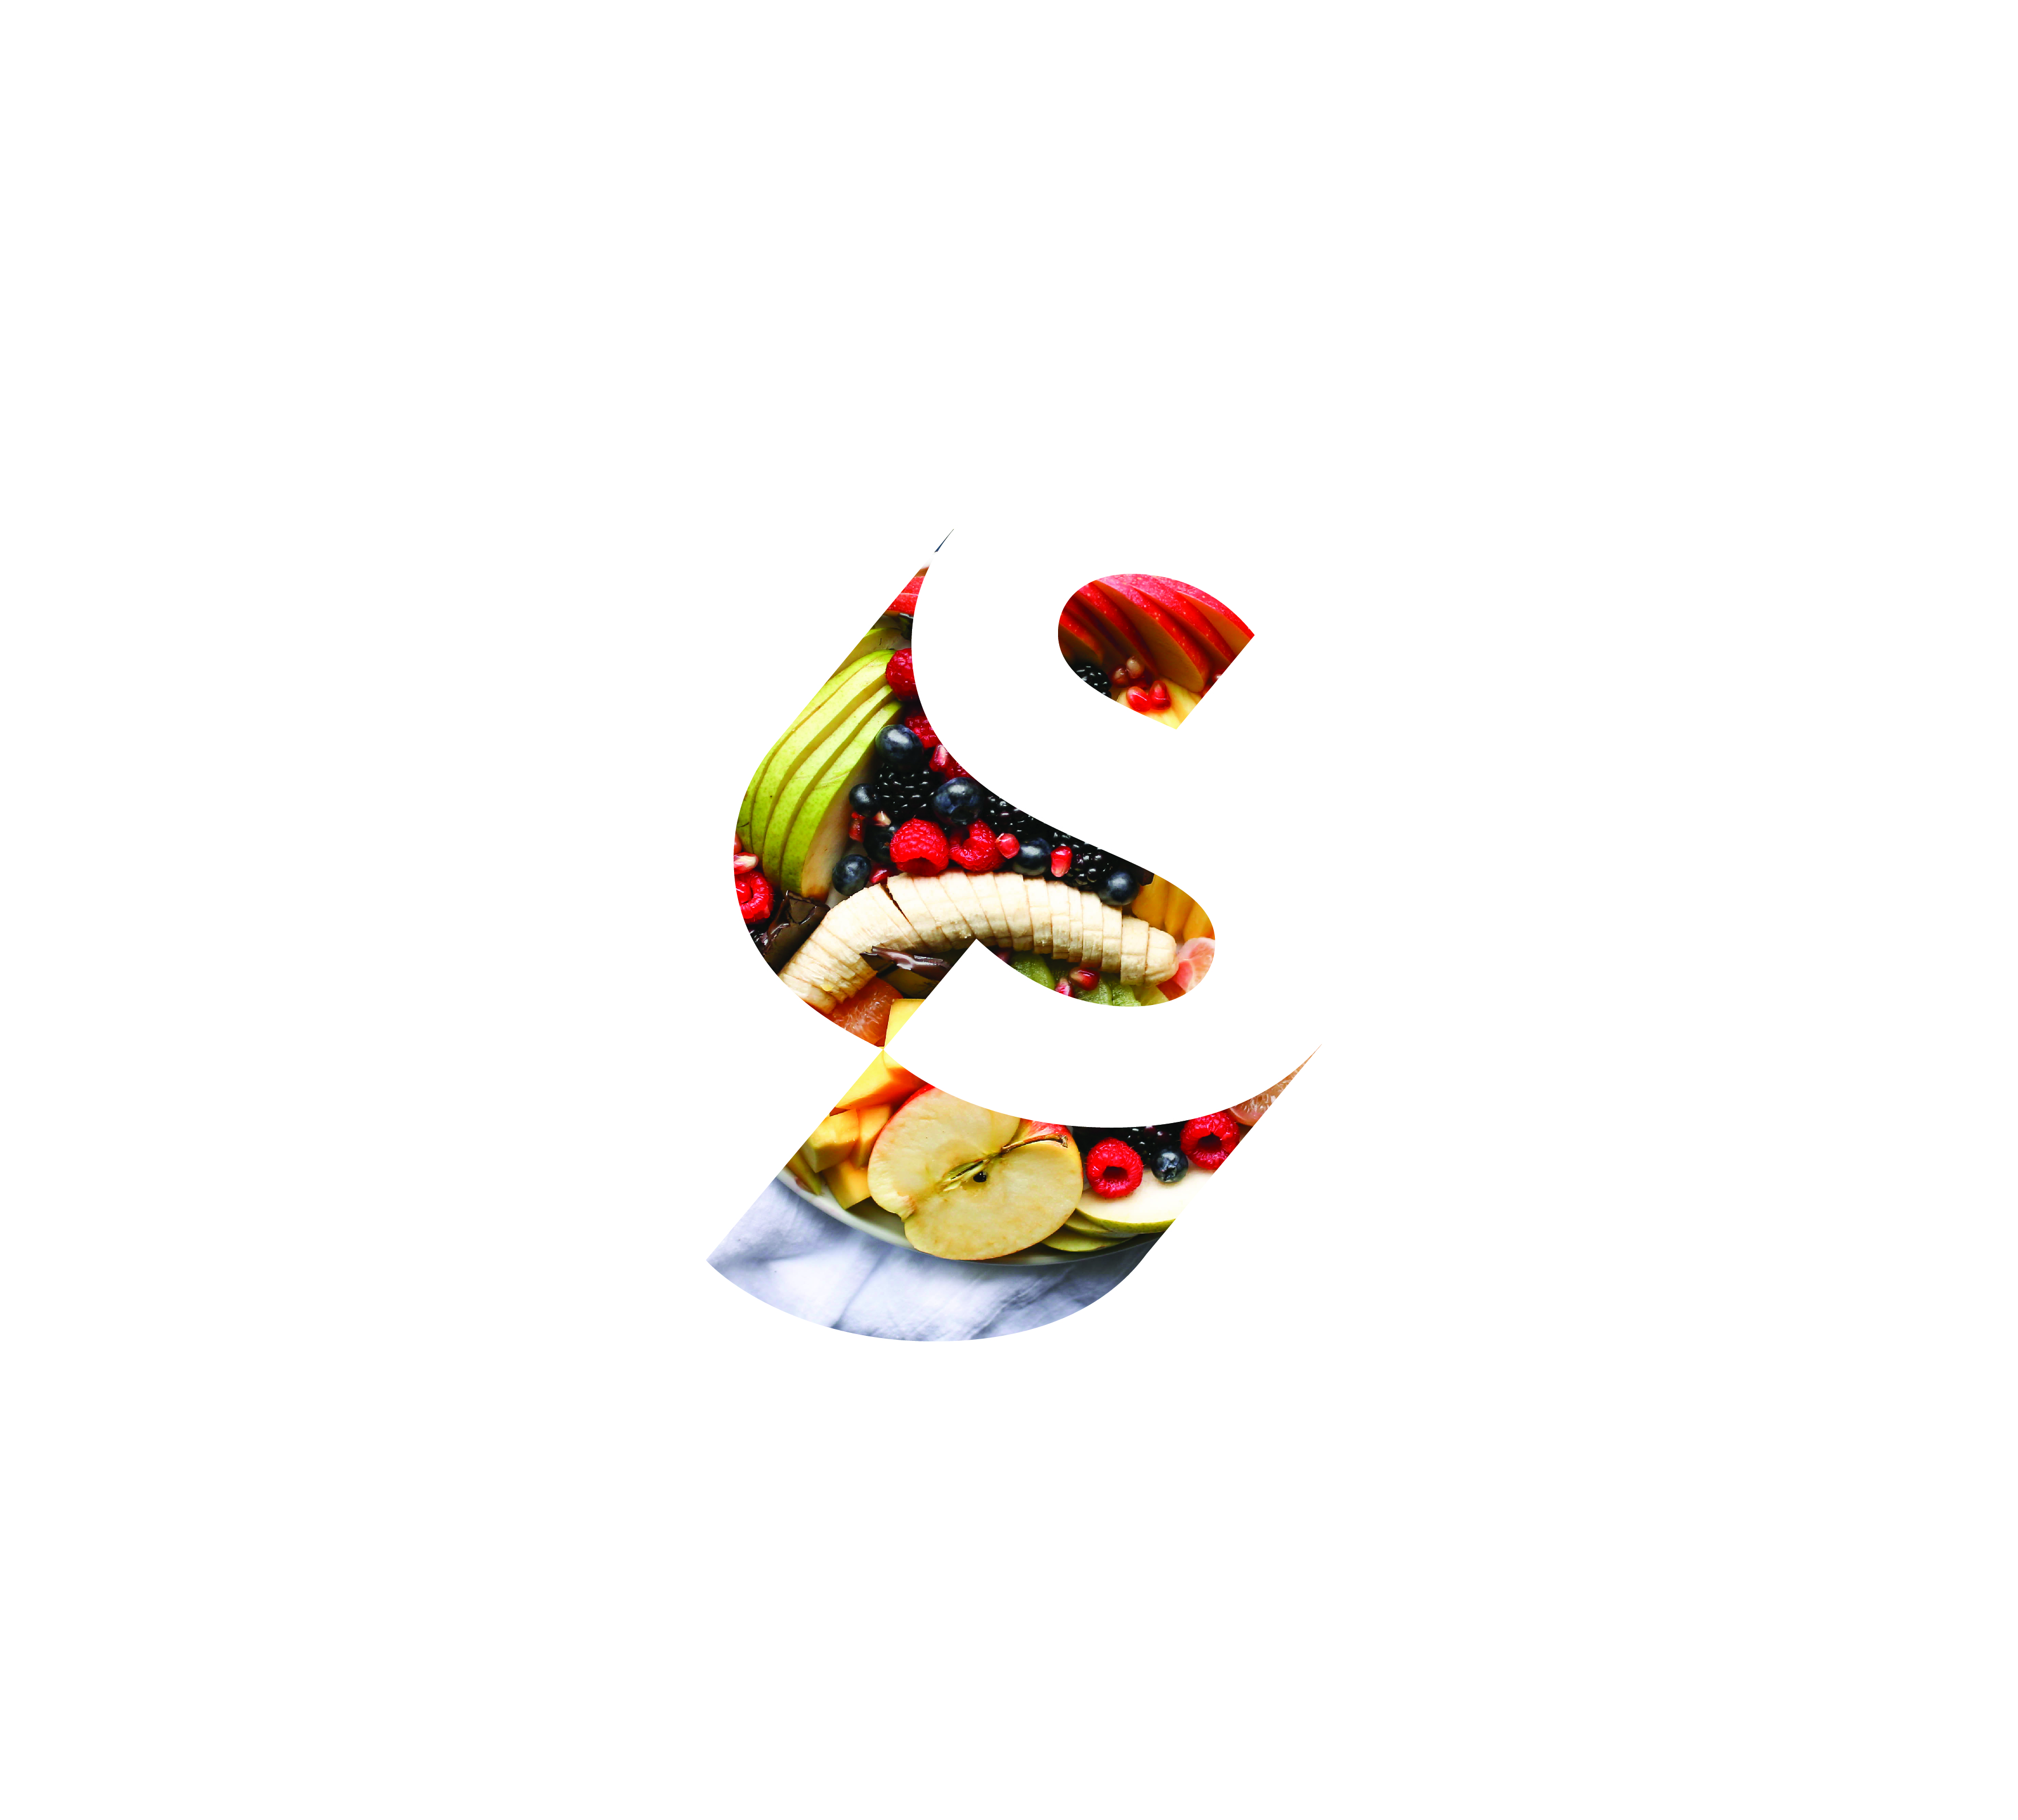 http://byronwritersfestival.com/wp-content/uploads/2016/05/StoryBoard-Icon-fruit-small-01.jpg